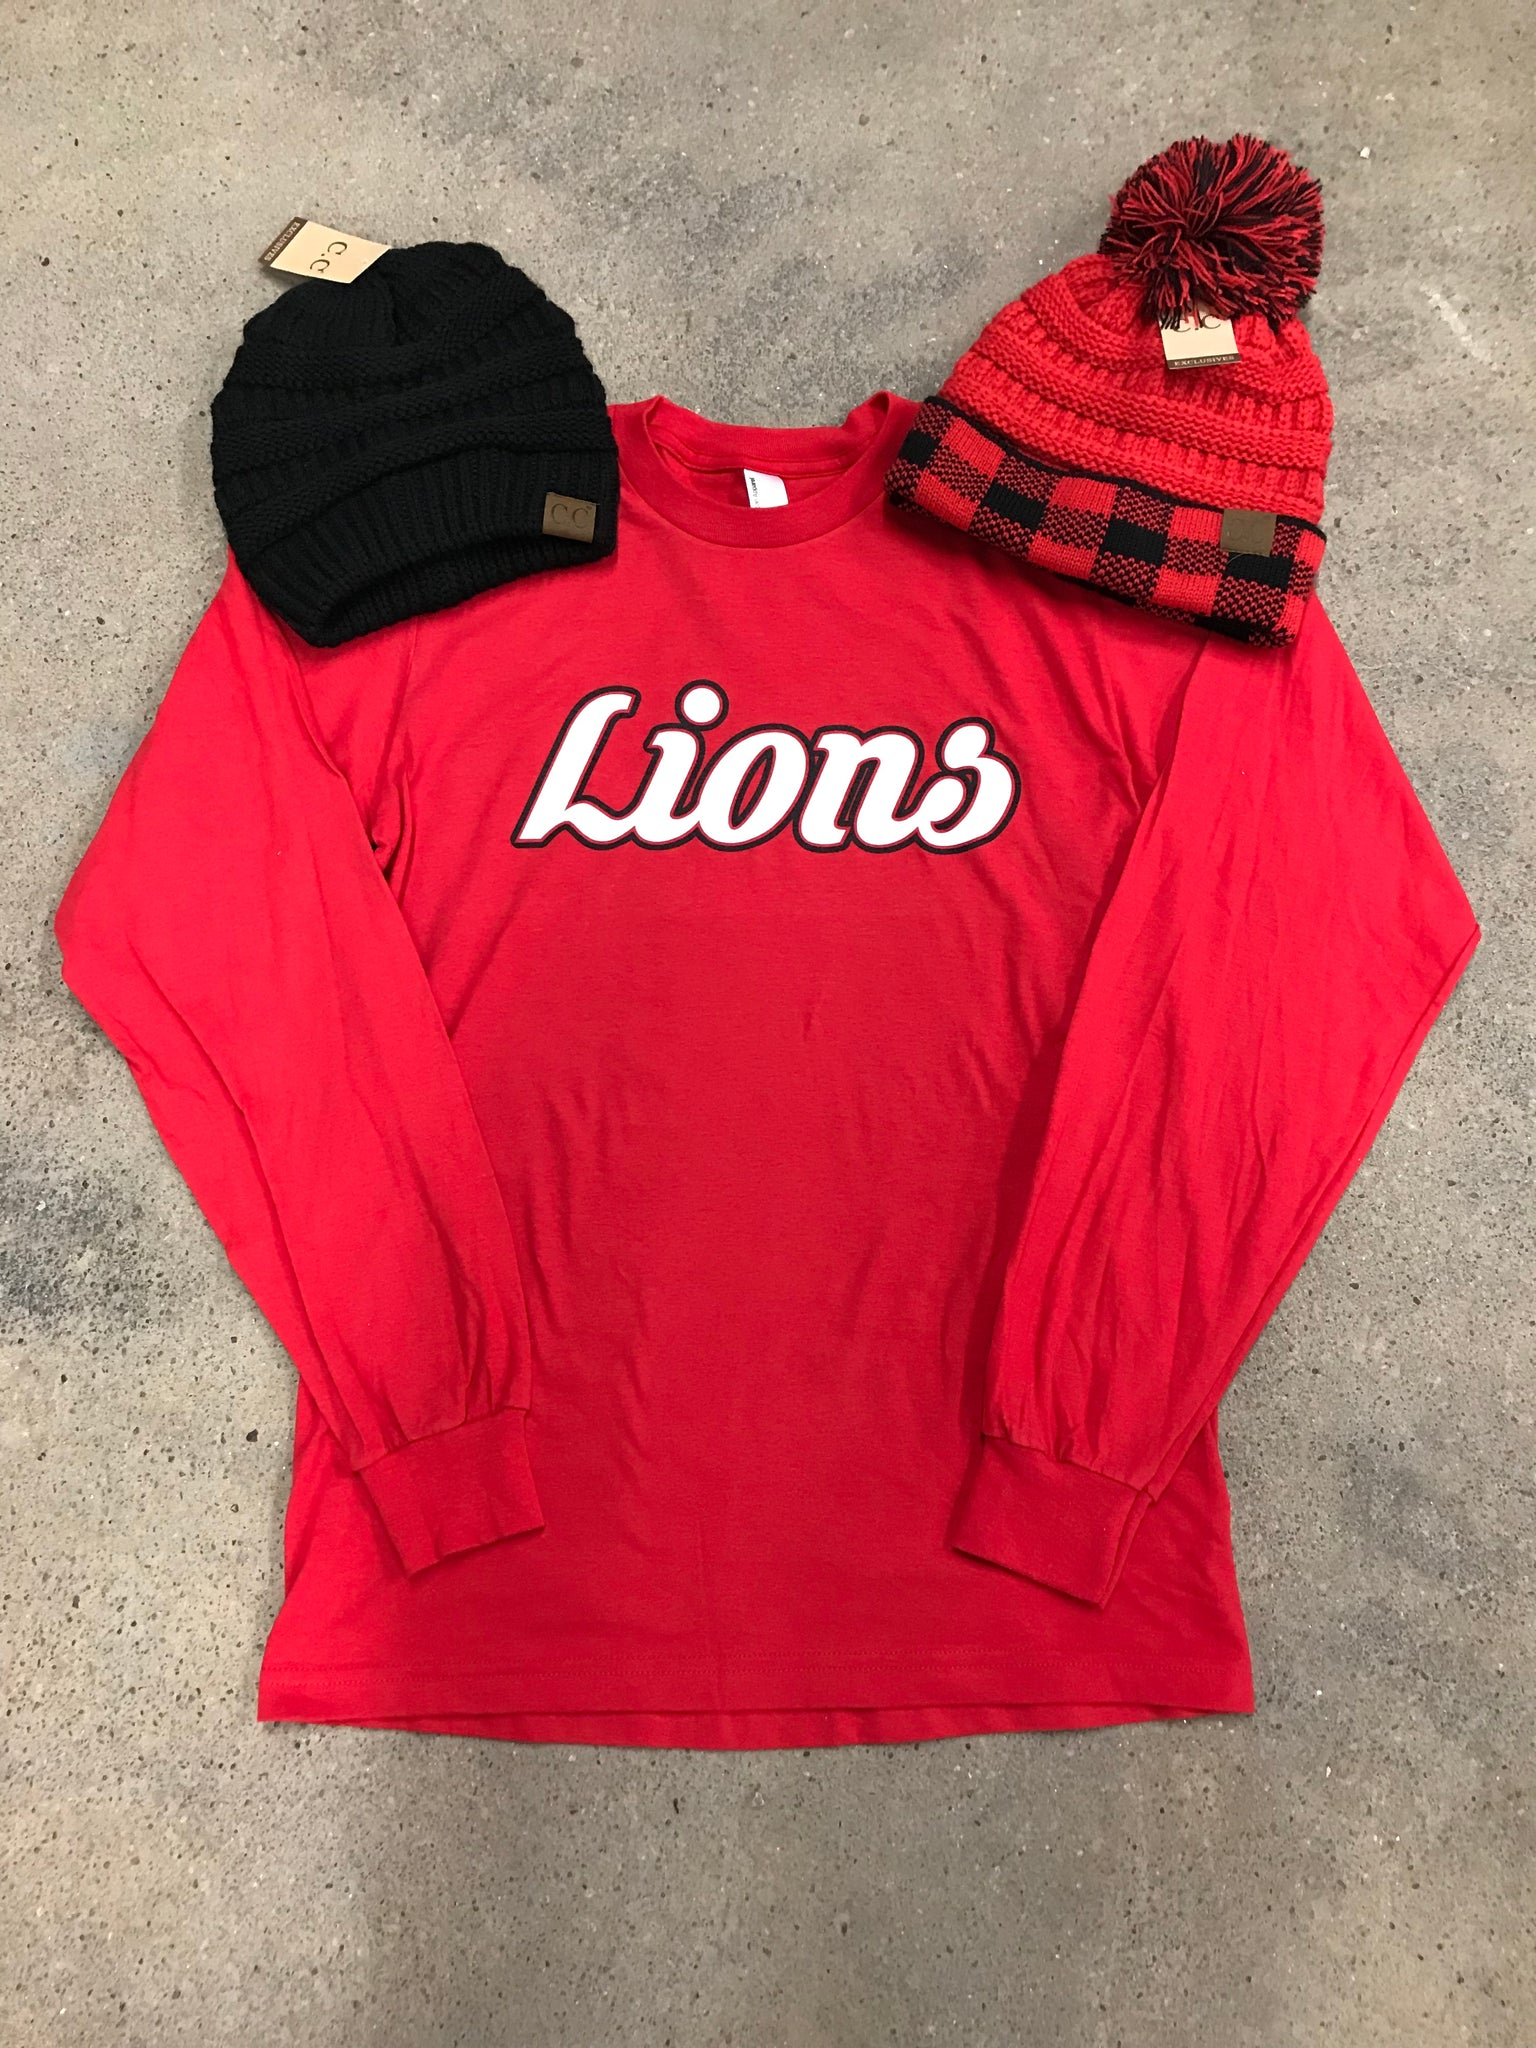 Lions Red Long Sleeve